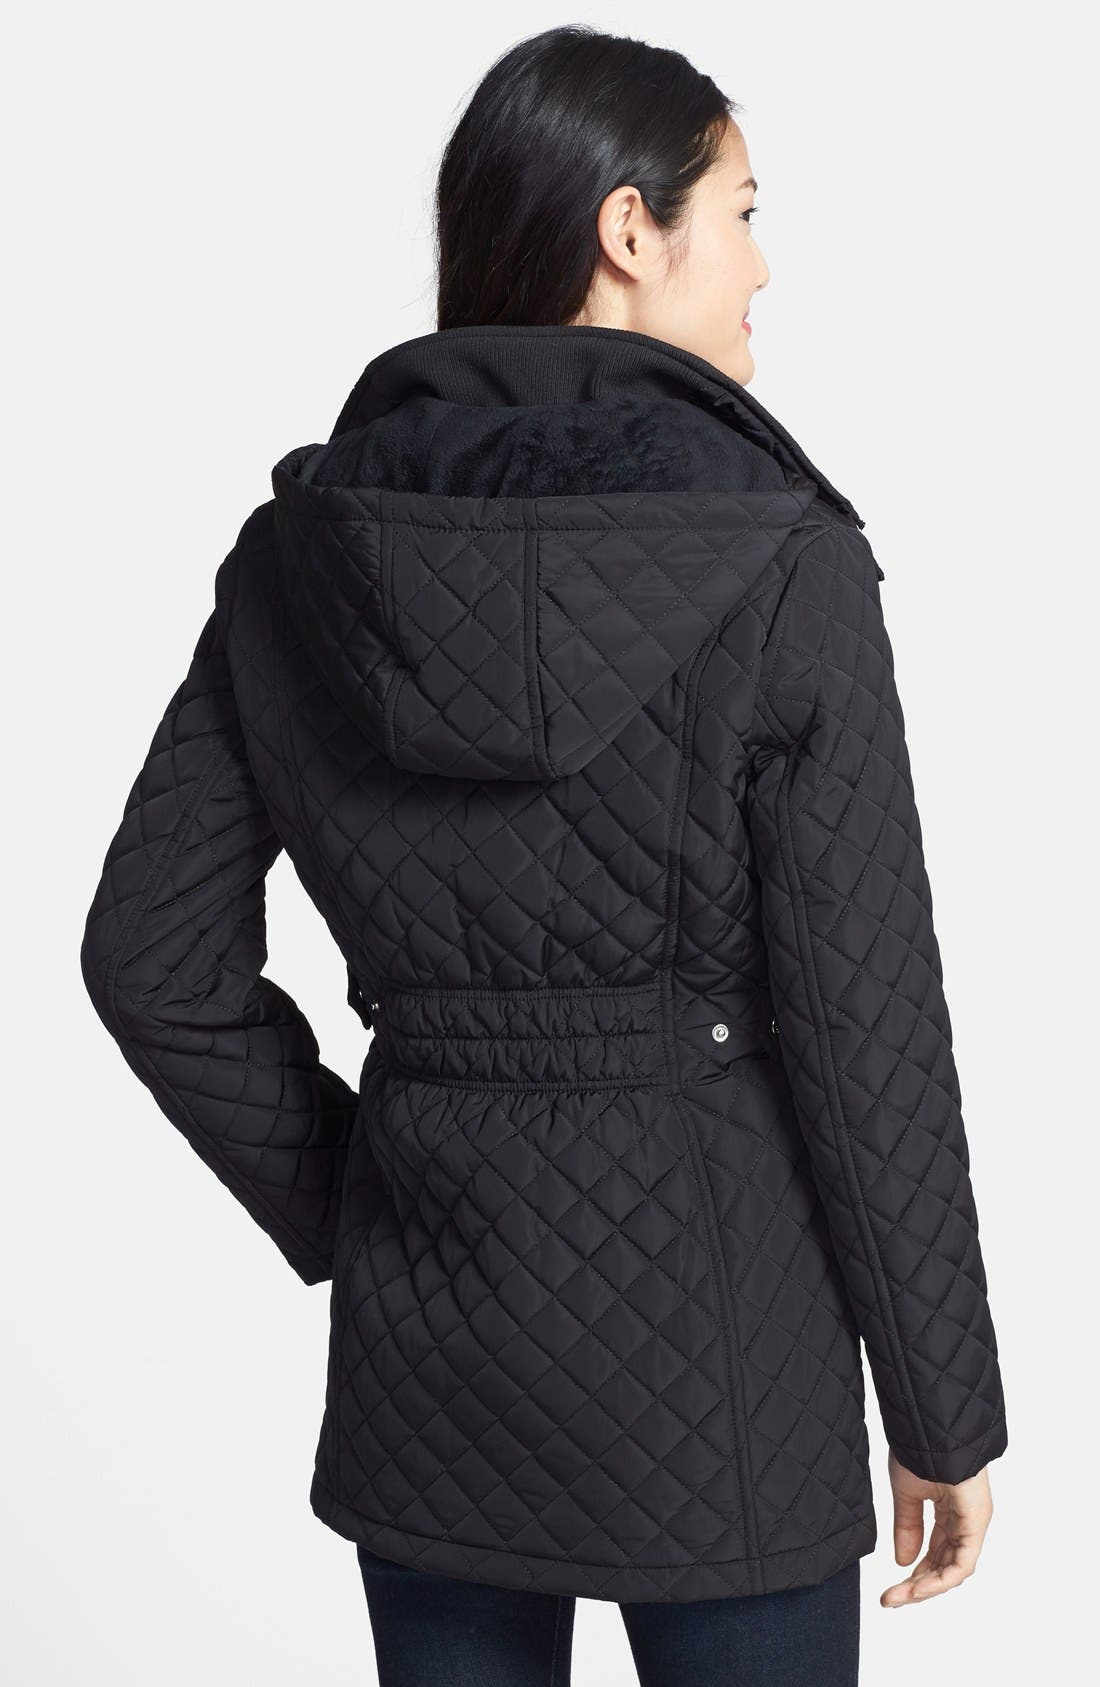 Hooded Quilted Jacket,                             Alternate thumbnail 8, color,                             001